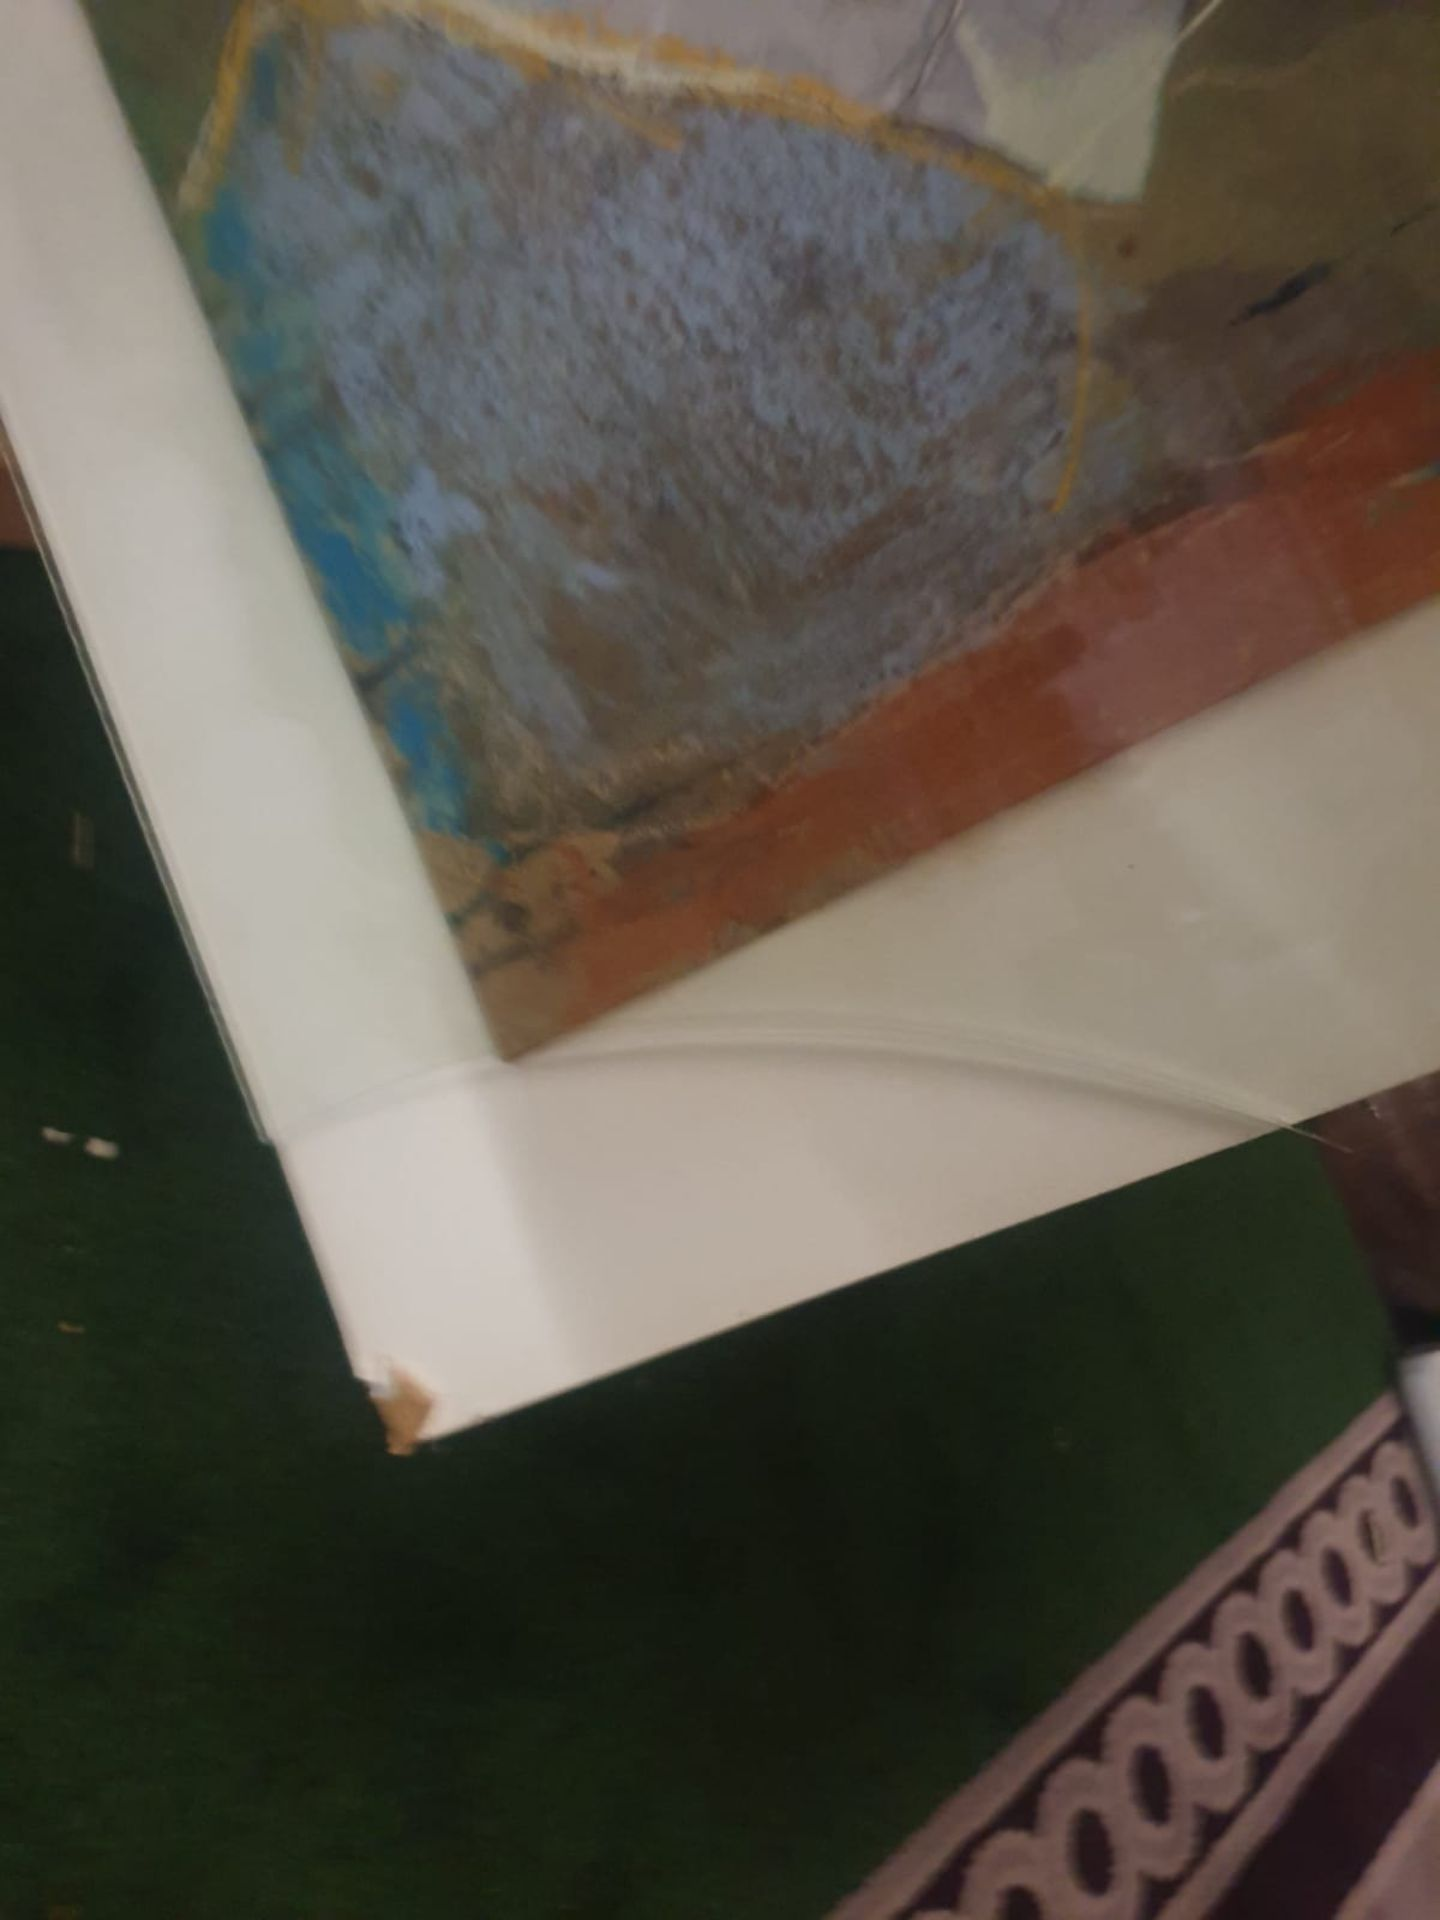 Tamsen Louise Croft - Treikcliff 1991 framed Mixed media on paper label verso reads purchased - Image 5 of 5